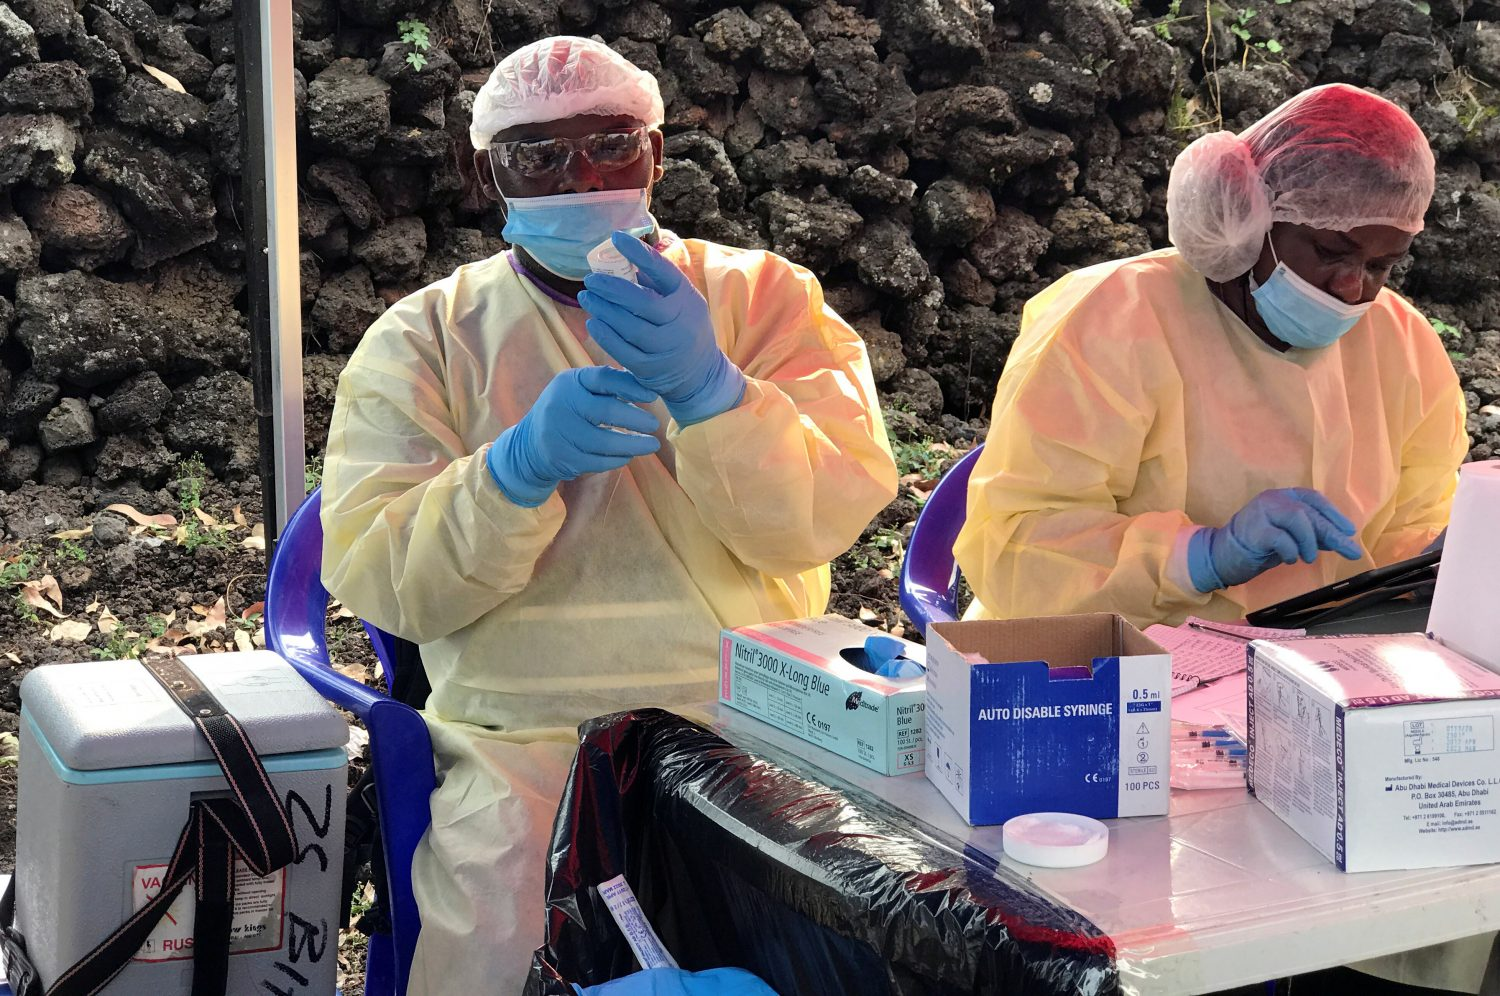 FILE PHOTO: Congolese health workers prepare to administer ebola vaccination to residents at a centre in Goma, Democratic Republic of Congo, August 1, 2019. REUTERS/Djaffer Sabiti